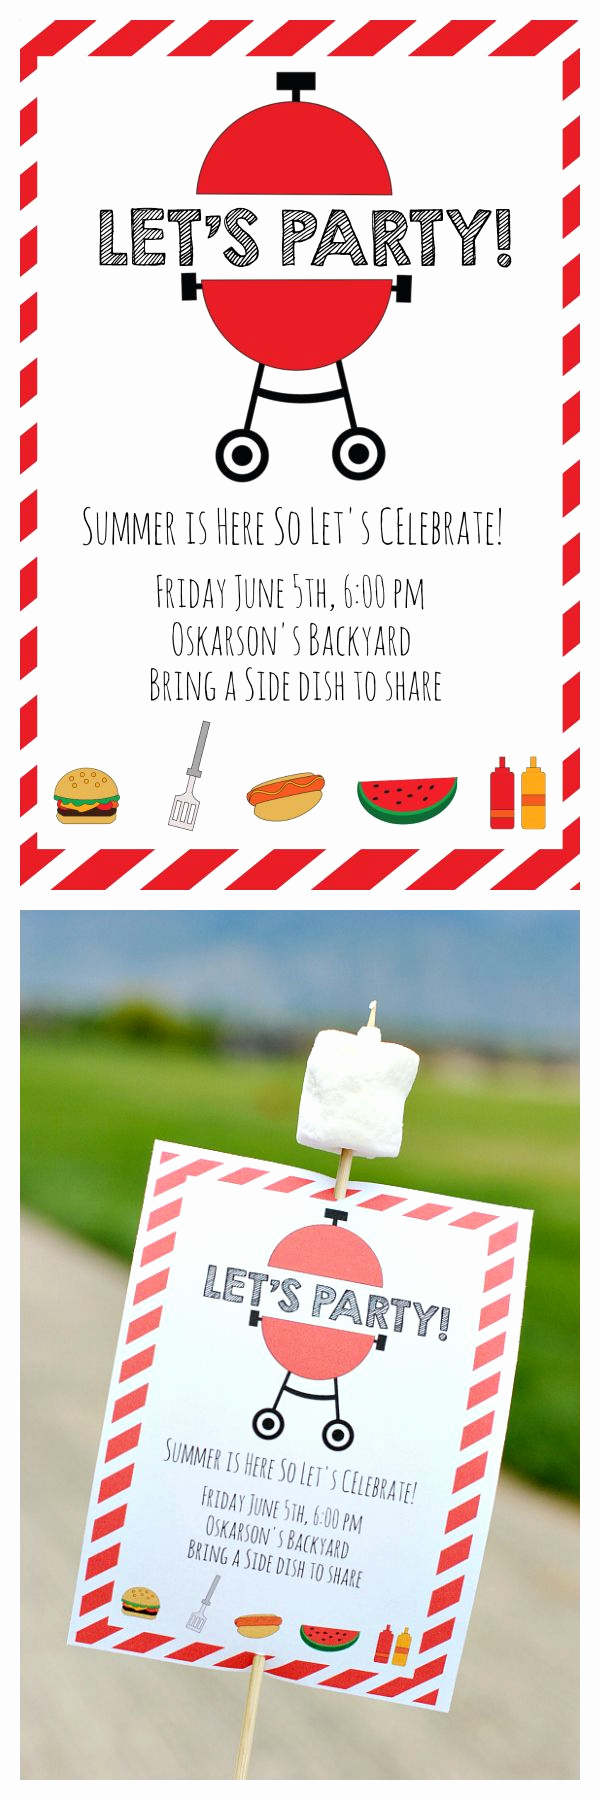 Block Party Invitation Template Beautiful 17 Best Ideas About Block Party Invites On Pinterest